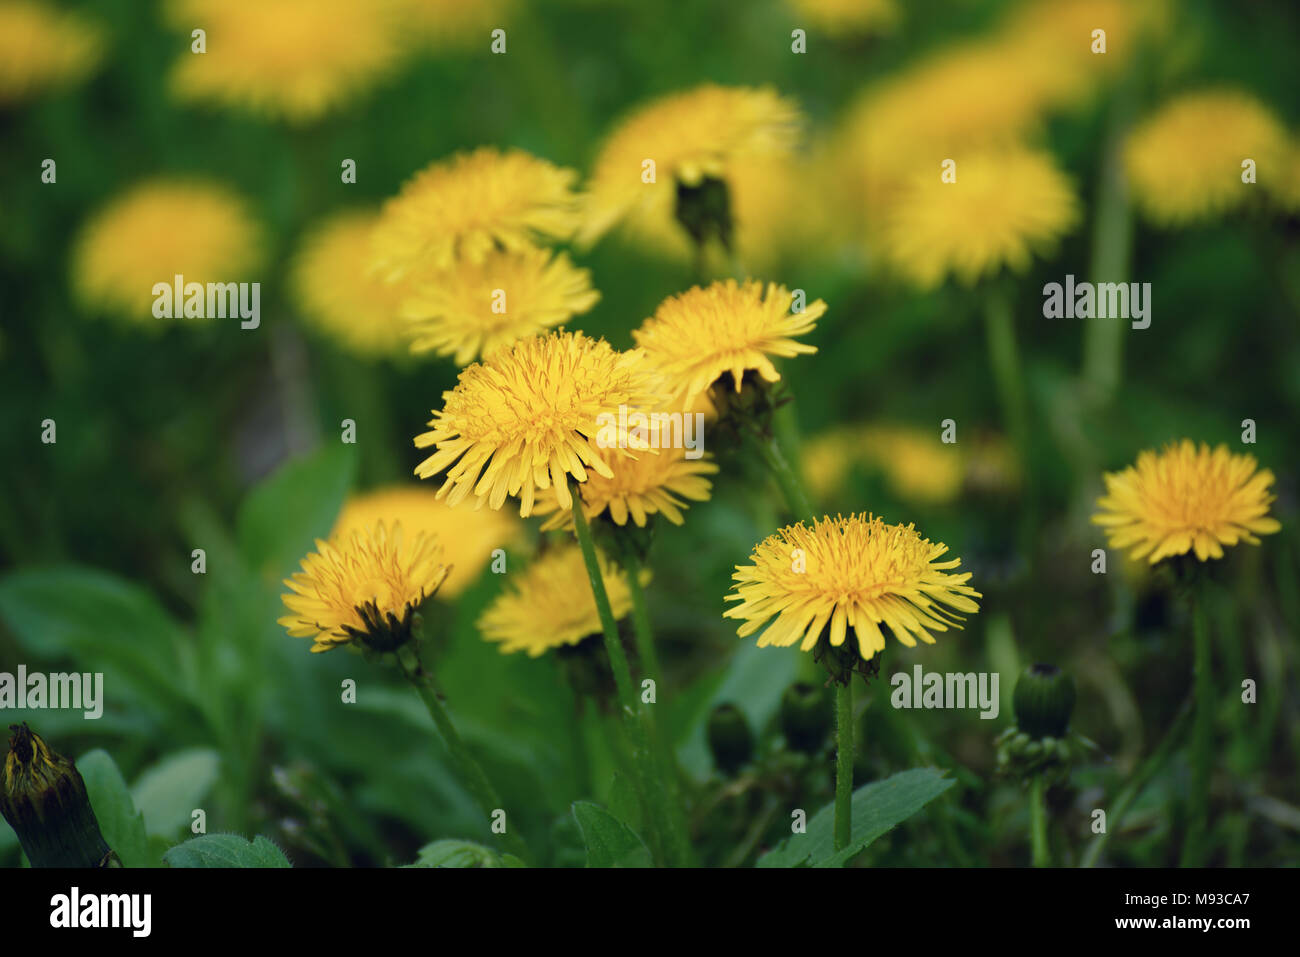 Dandelion flower meadow - Stock Image